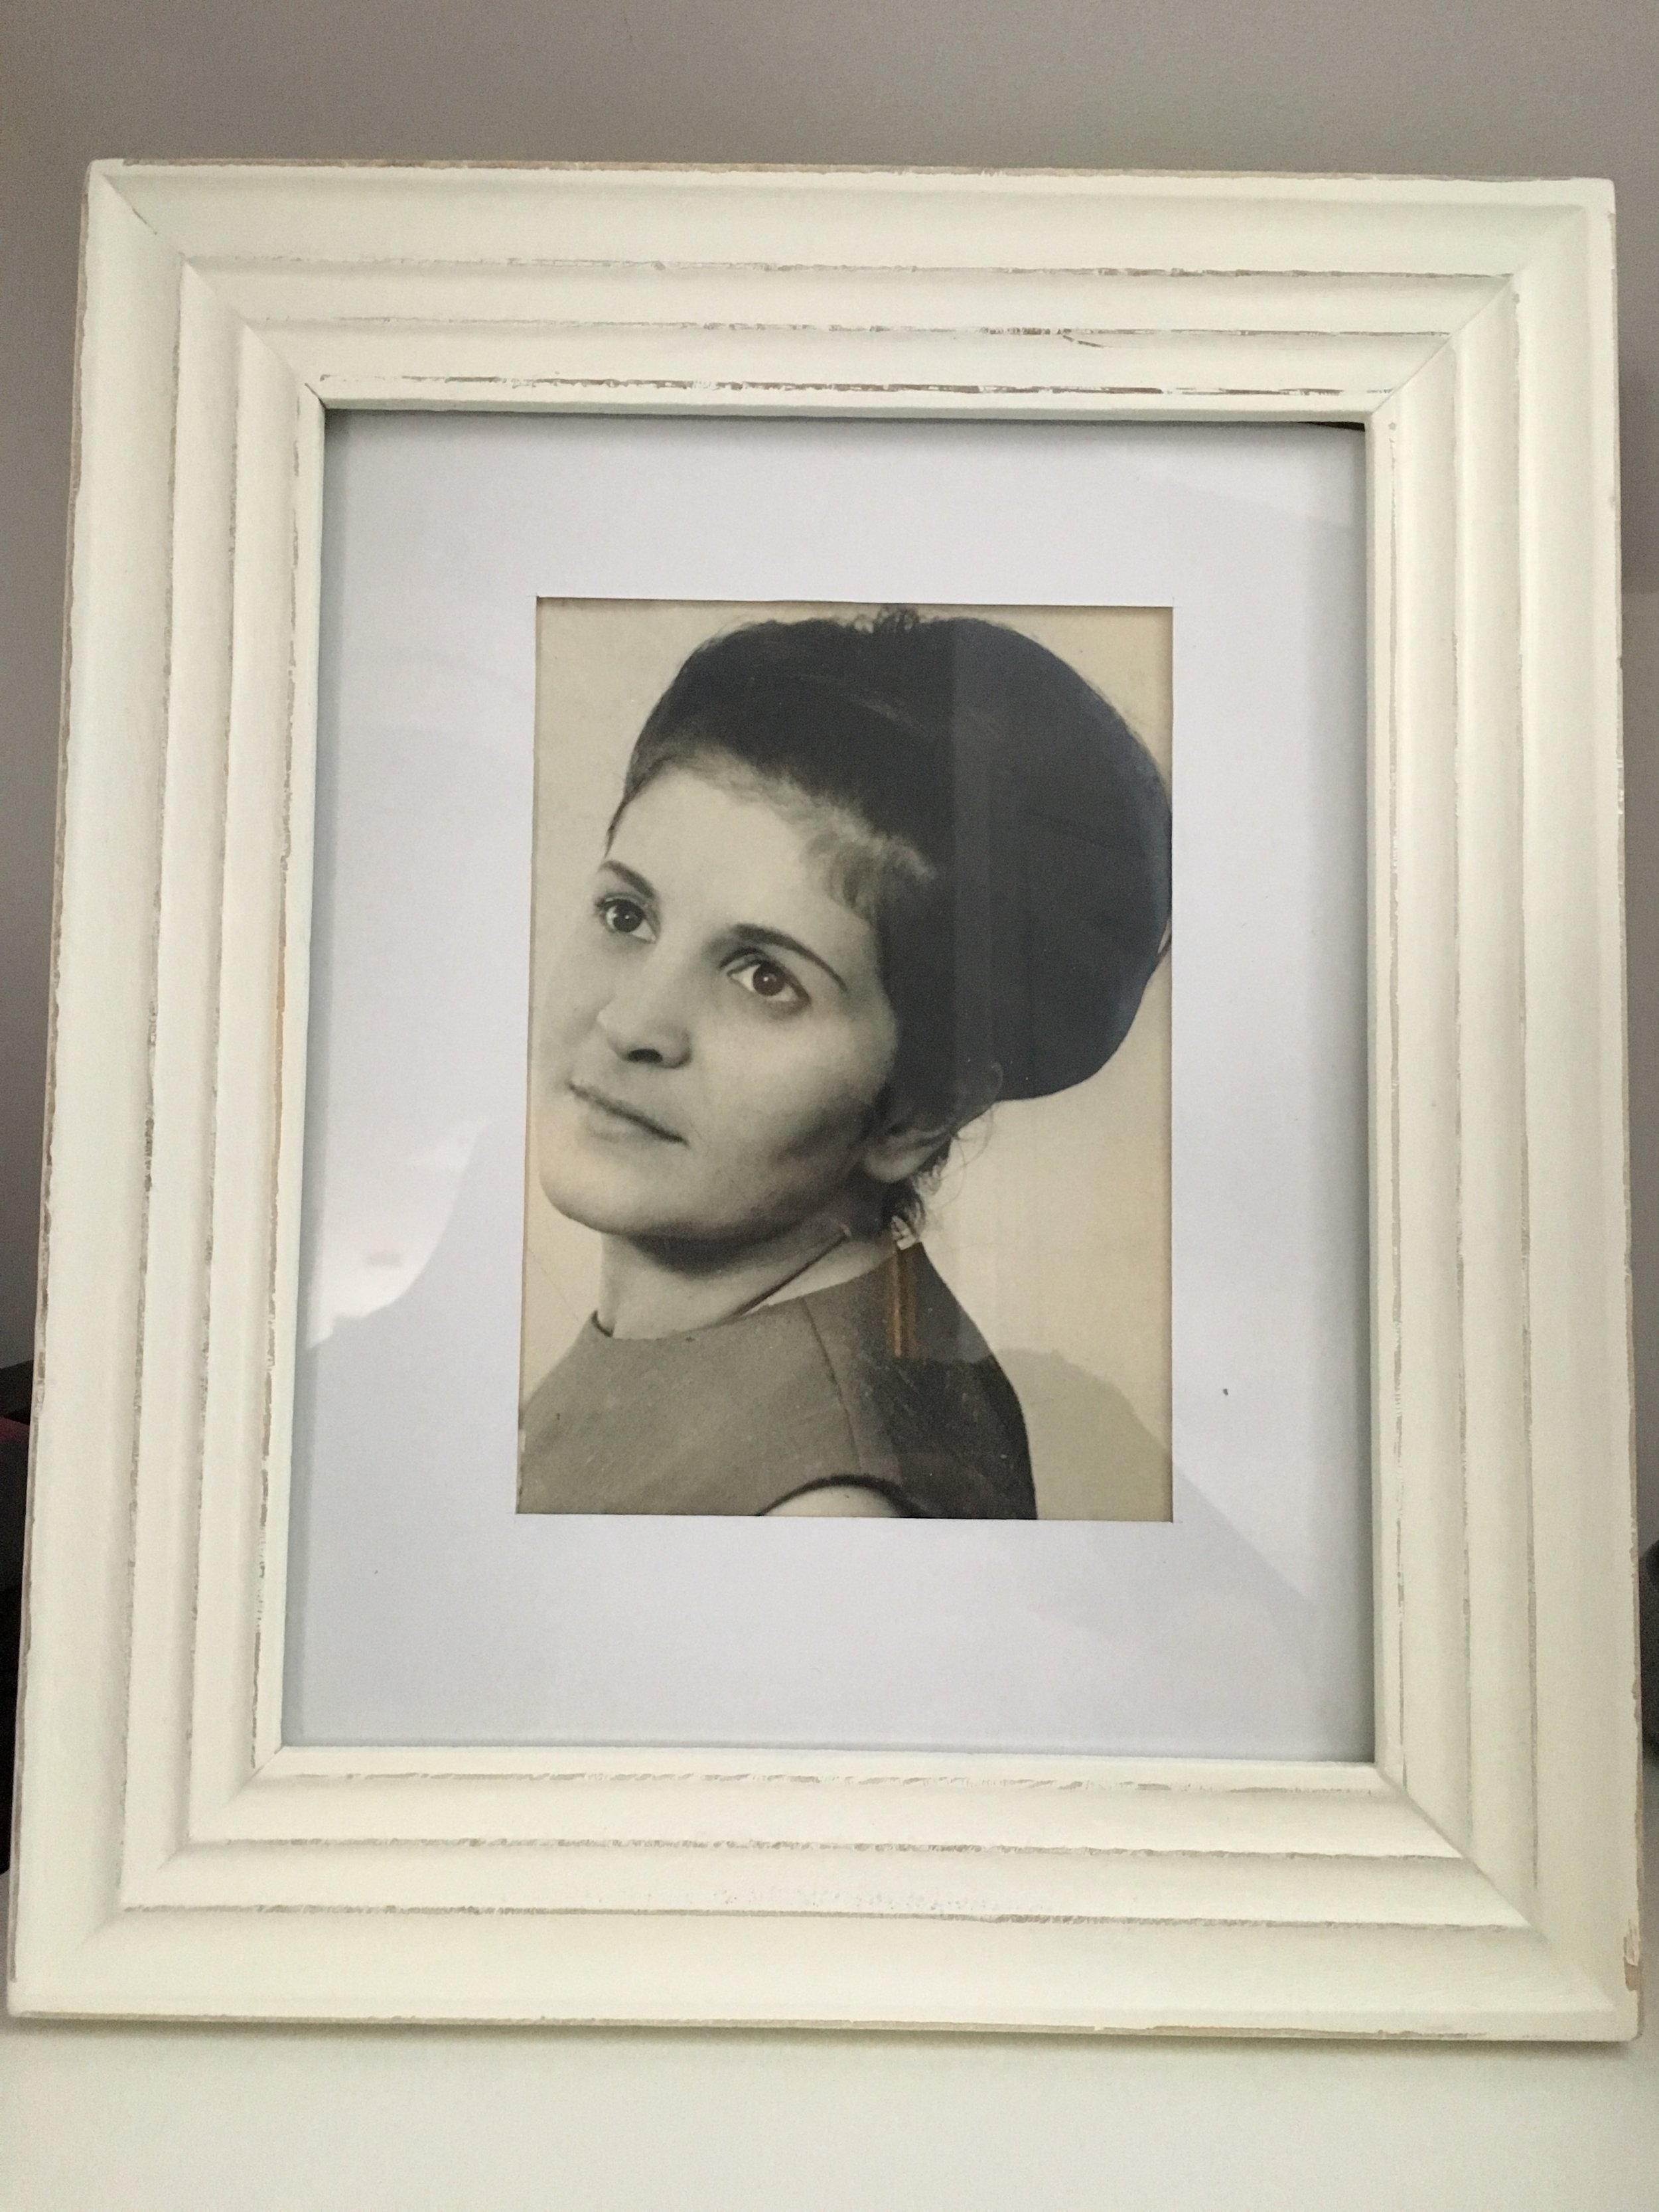 - My uncle was a professional photographer and produced some beautiful photos of my beloved mum, before I came along.